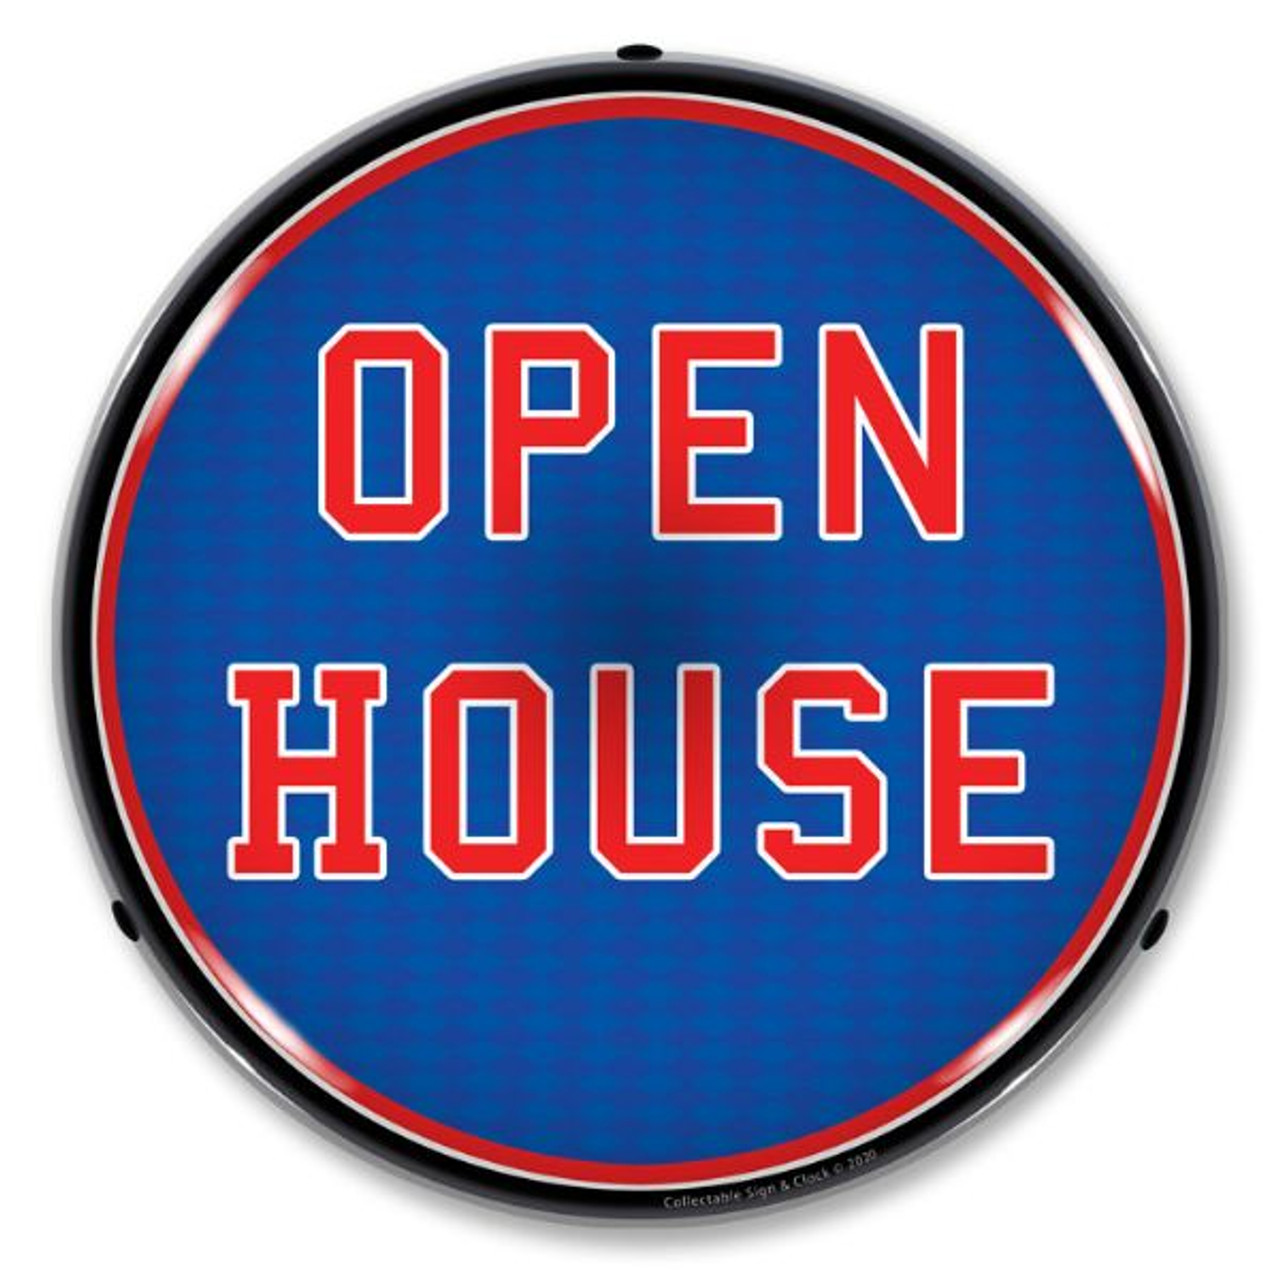 Open House LED Lighted Business Sign 14 x 14 Inches